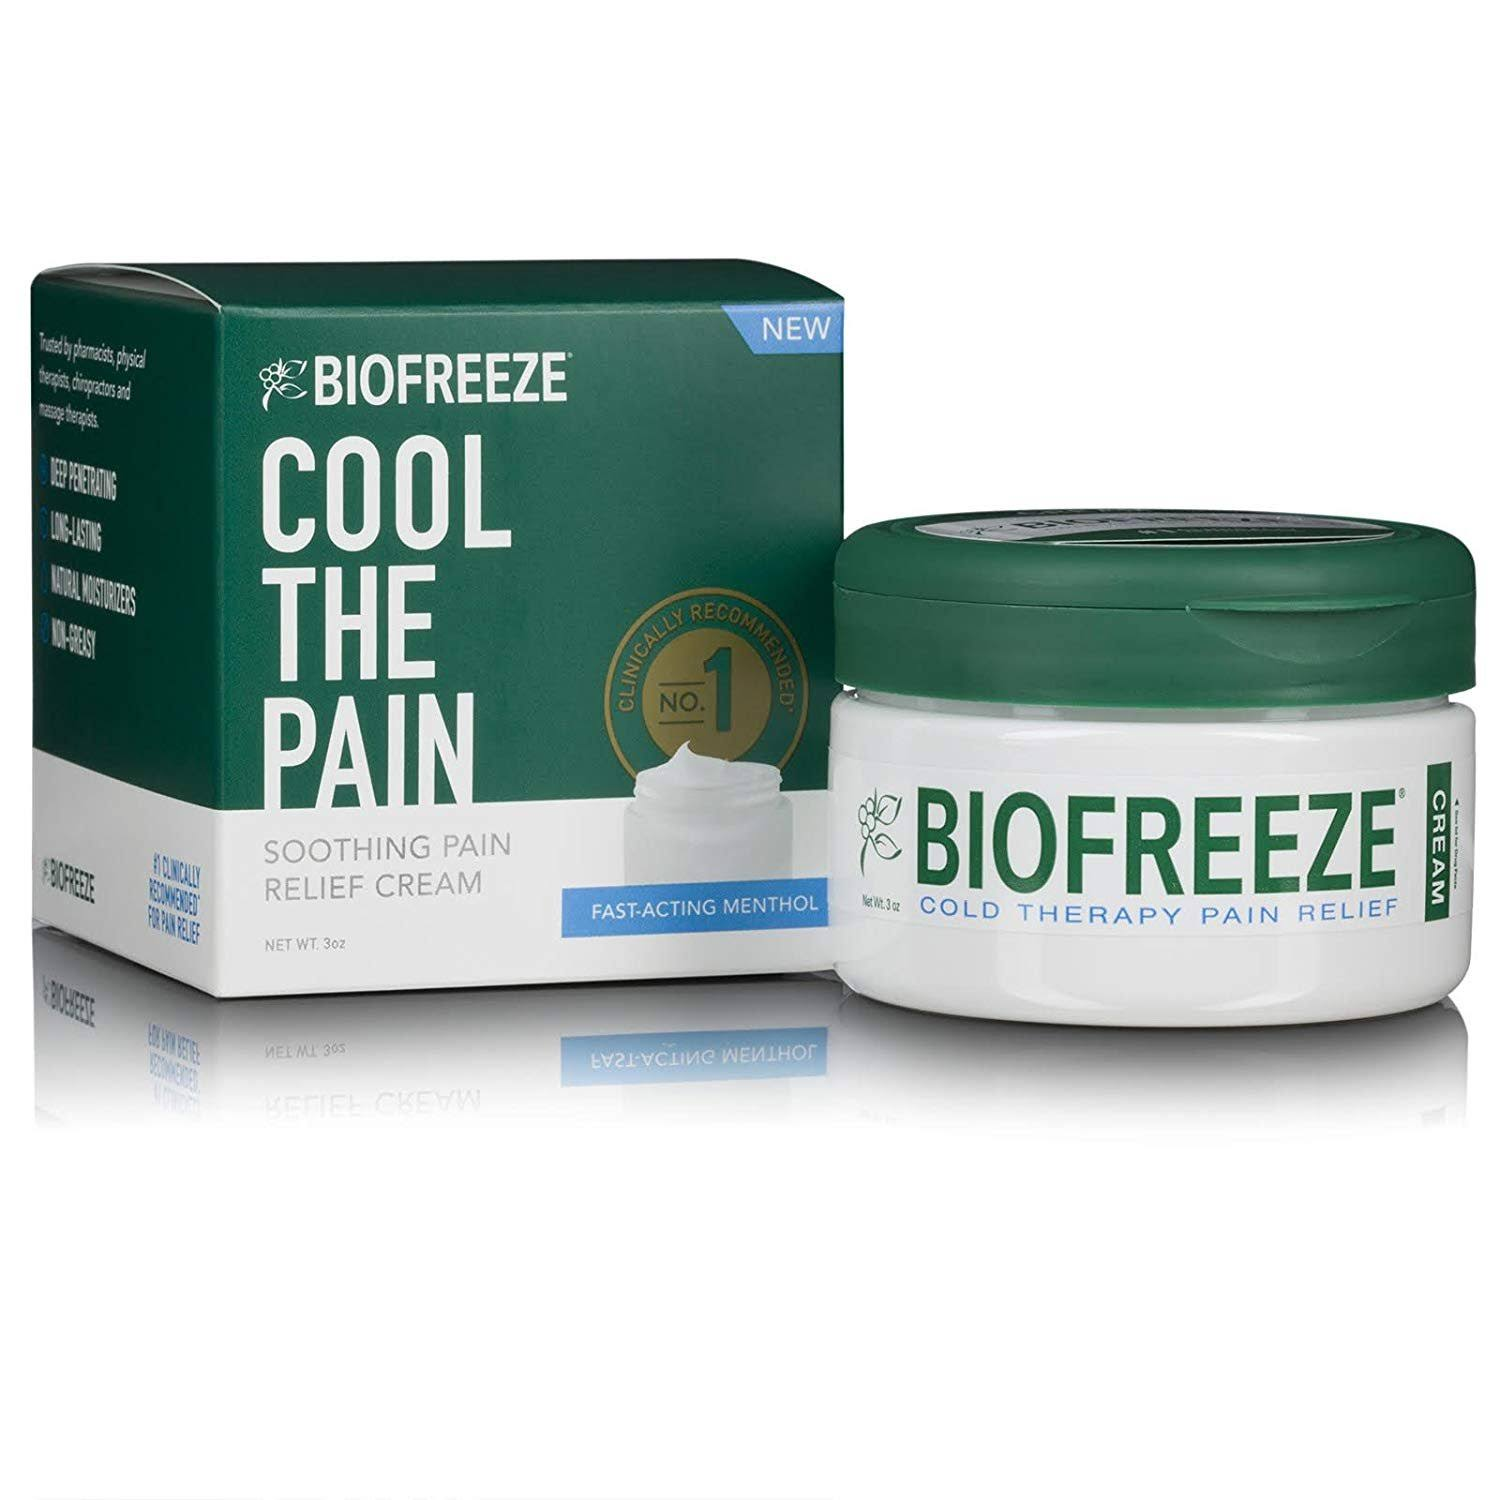 Biofreeze Soothing Pain Relief Cream - 3oz